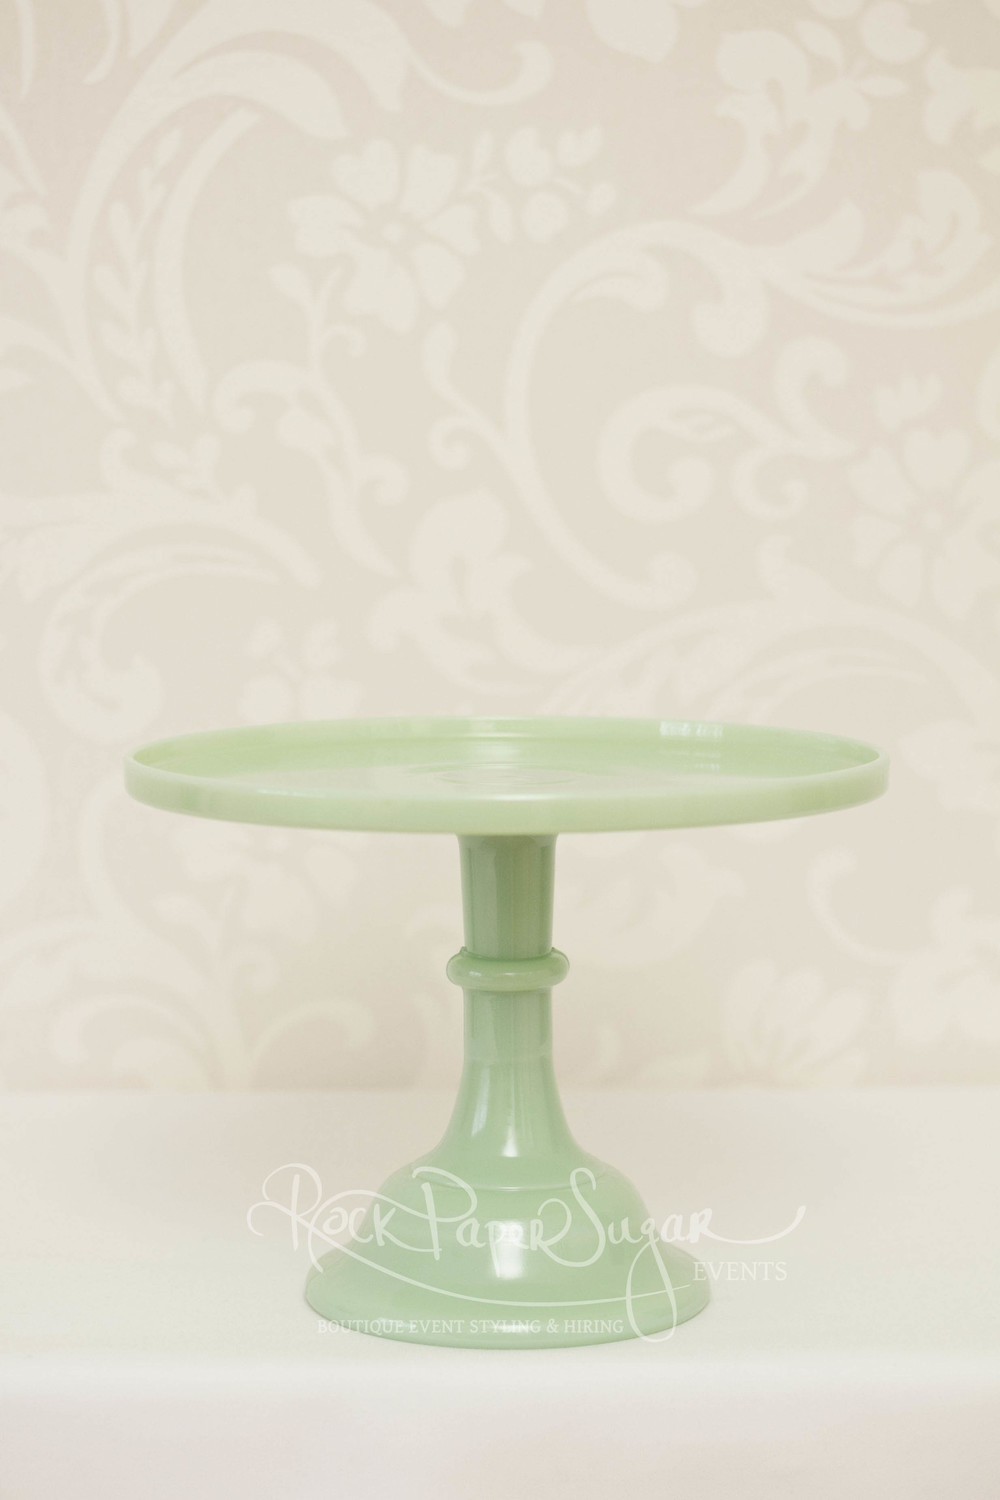 Rock Paper Sugar Events Cake Stands 006.jpg